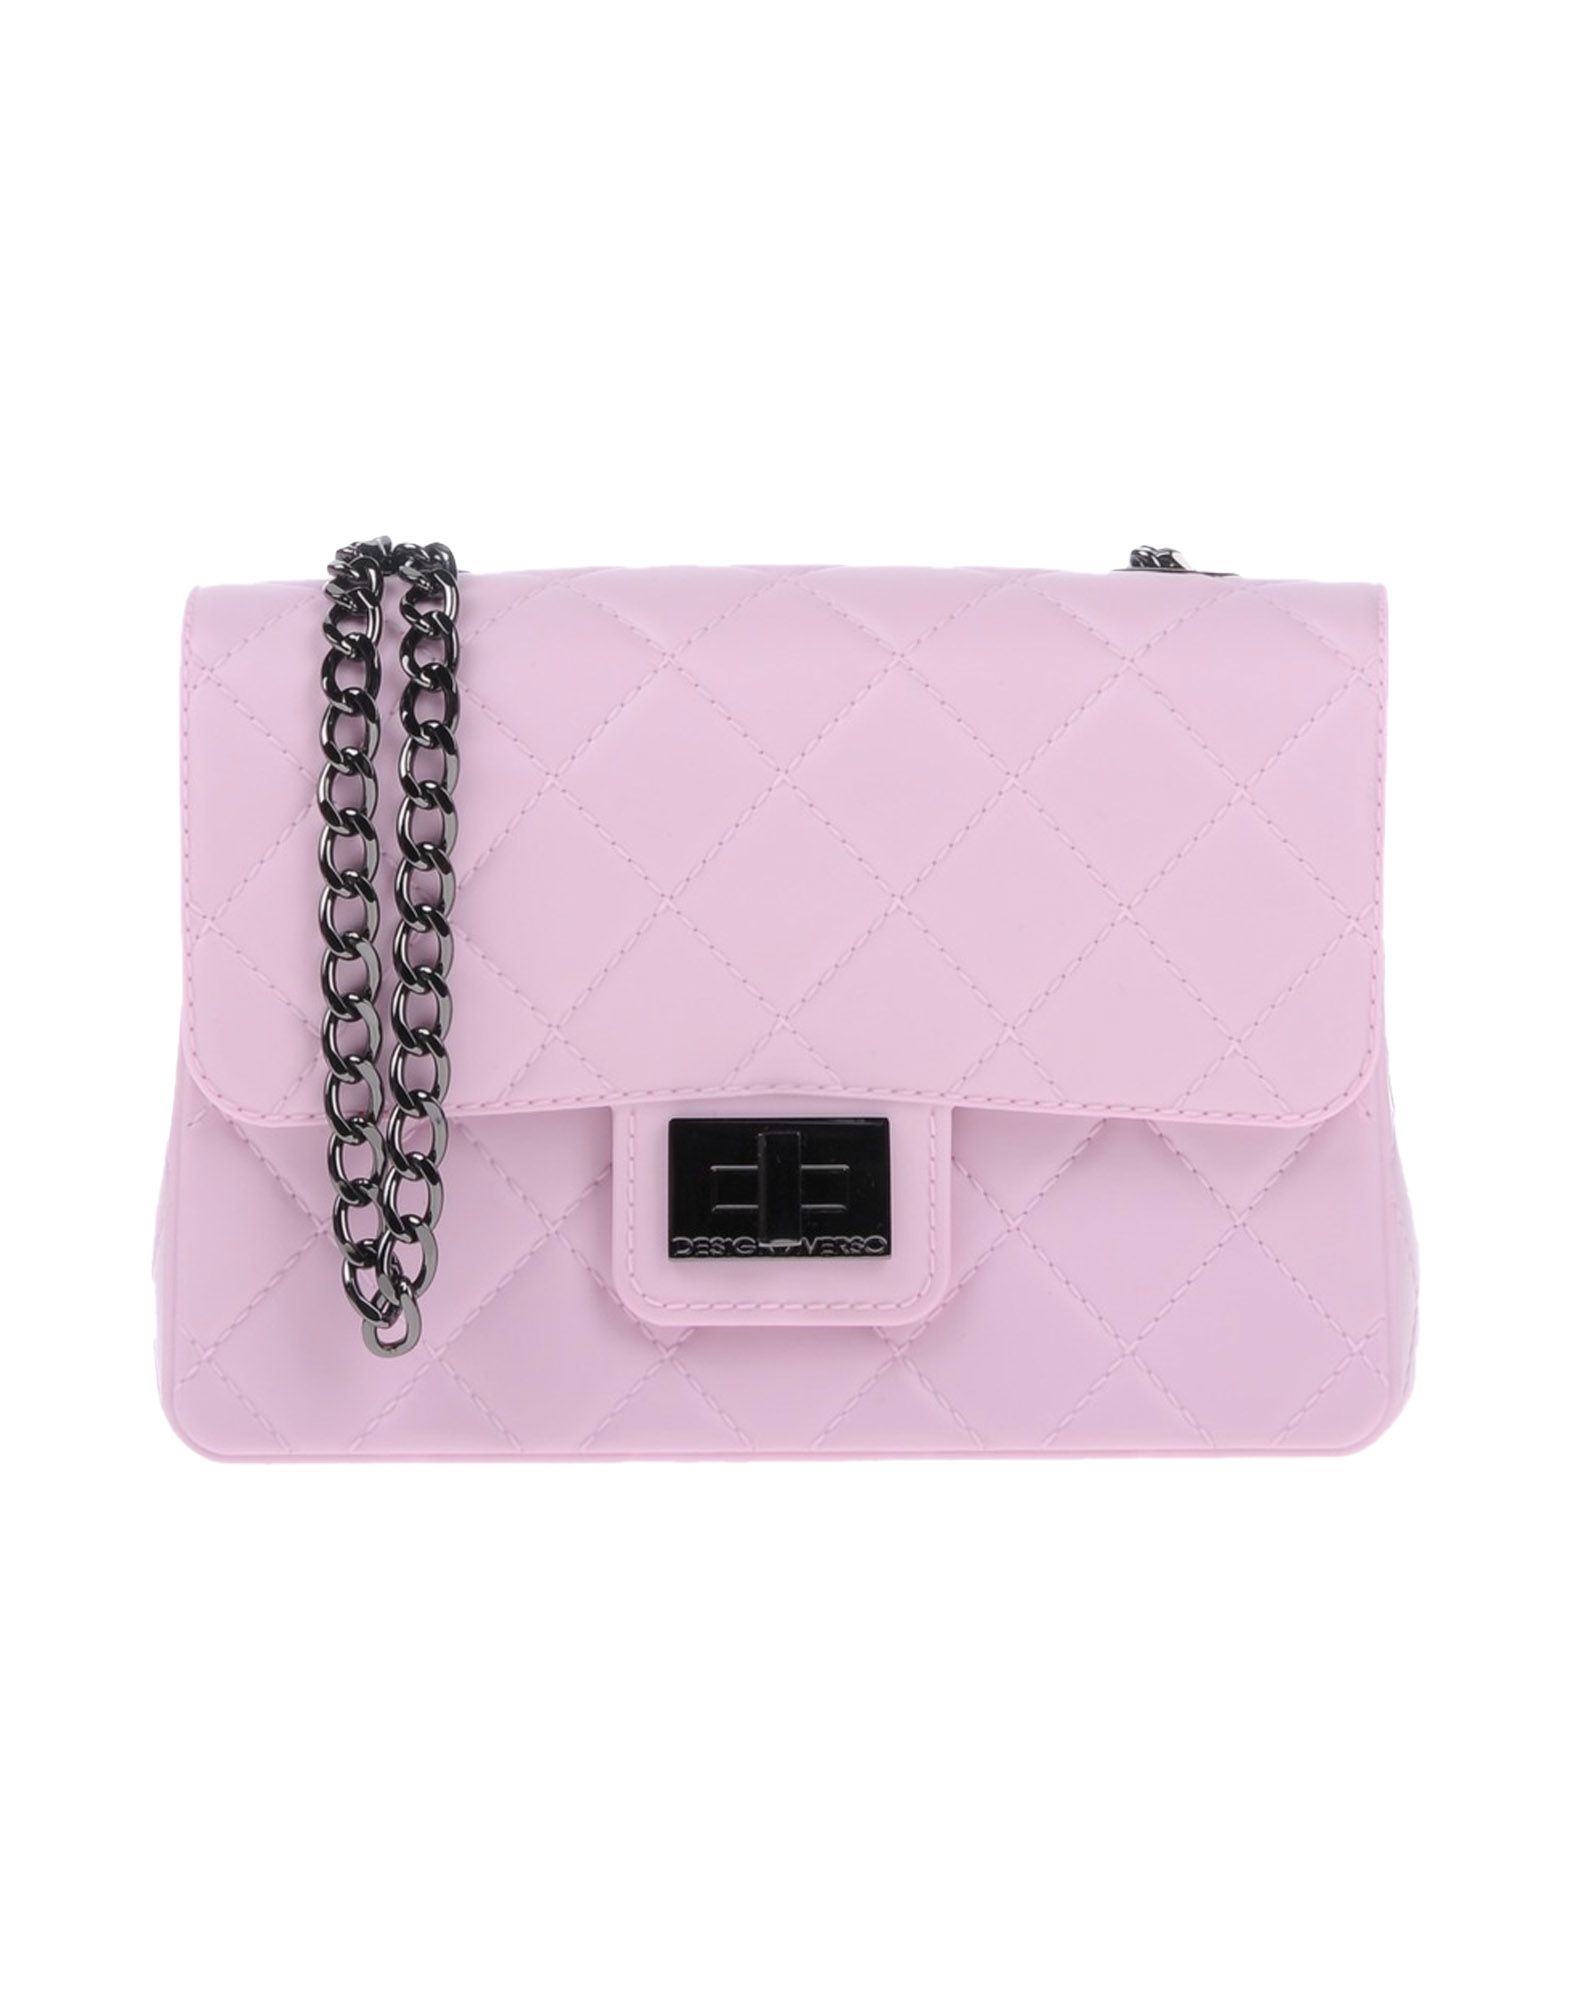 DESIGNINVERSO Cross-Body Bags in Pink